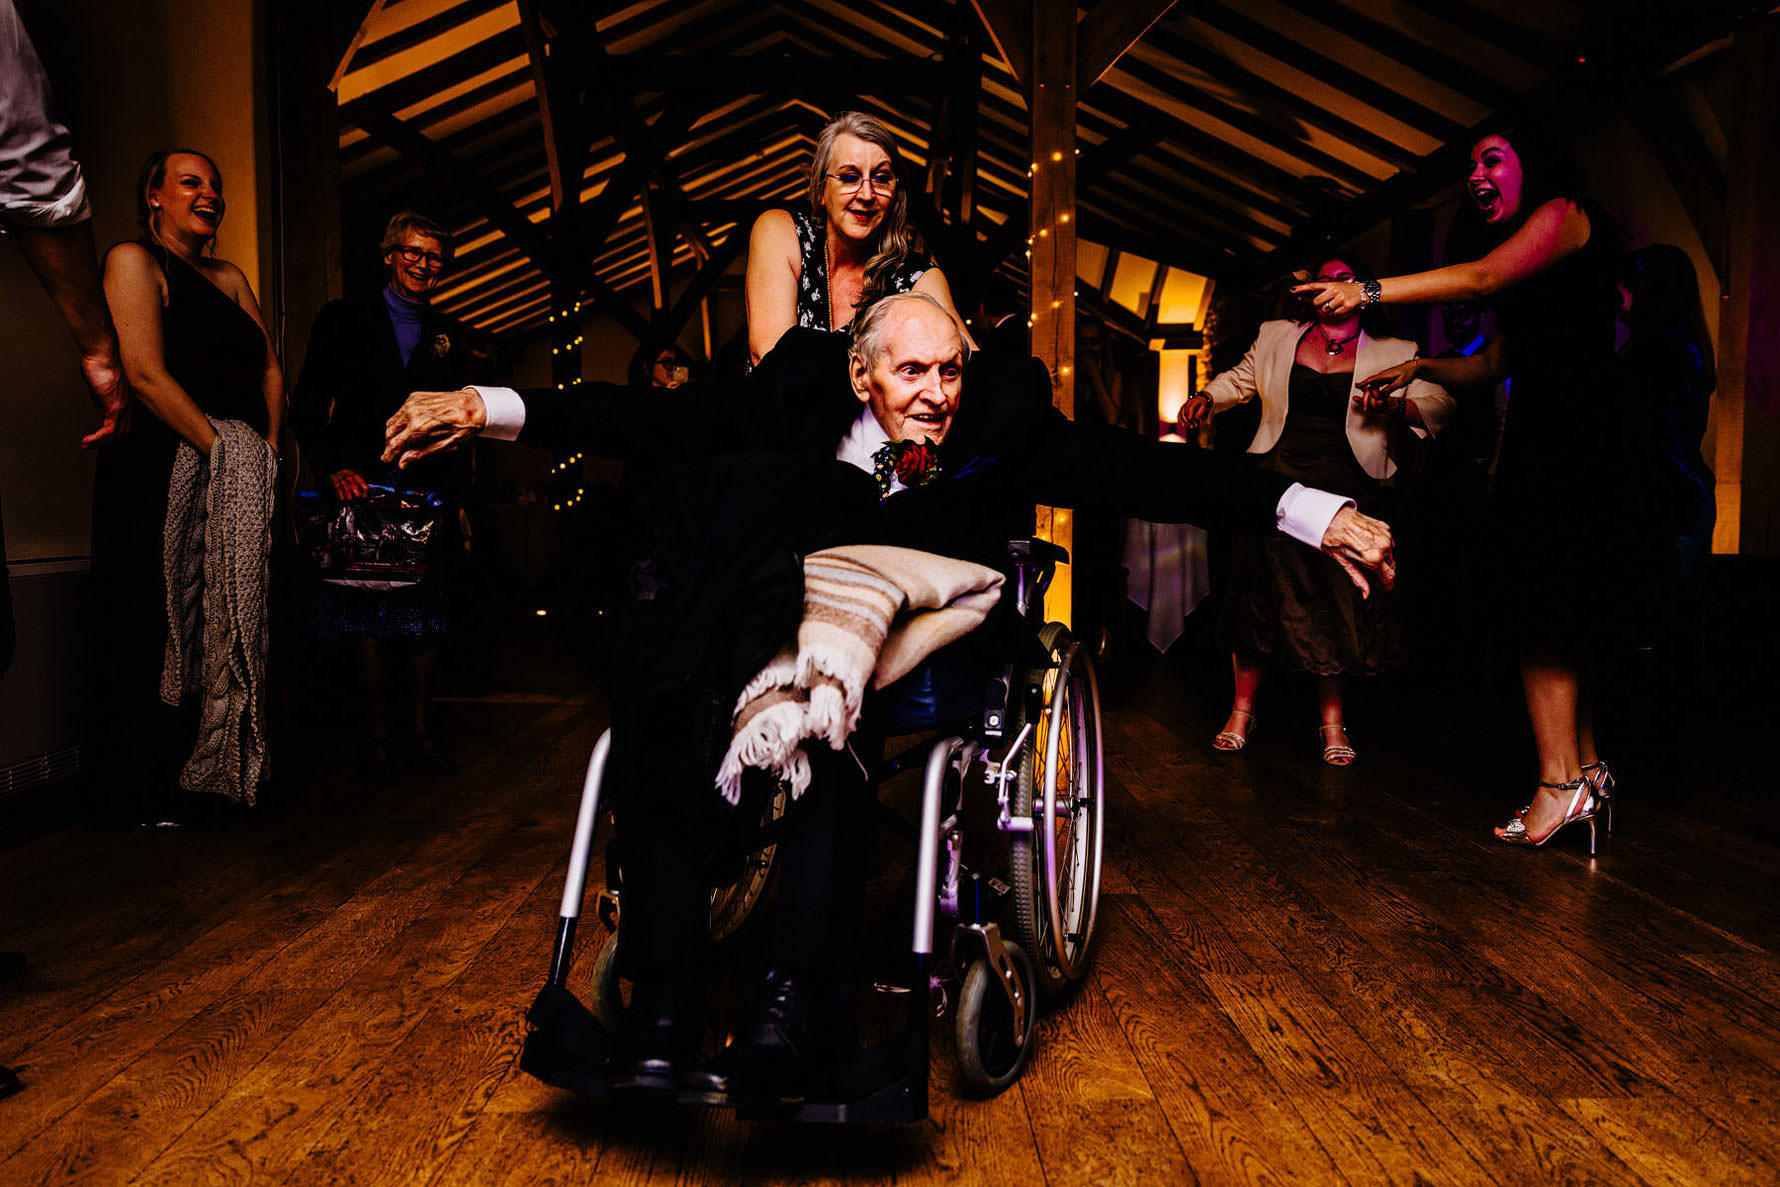 an elderly guest on the dancefloor